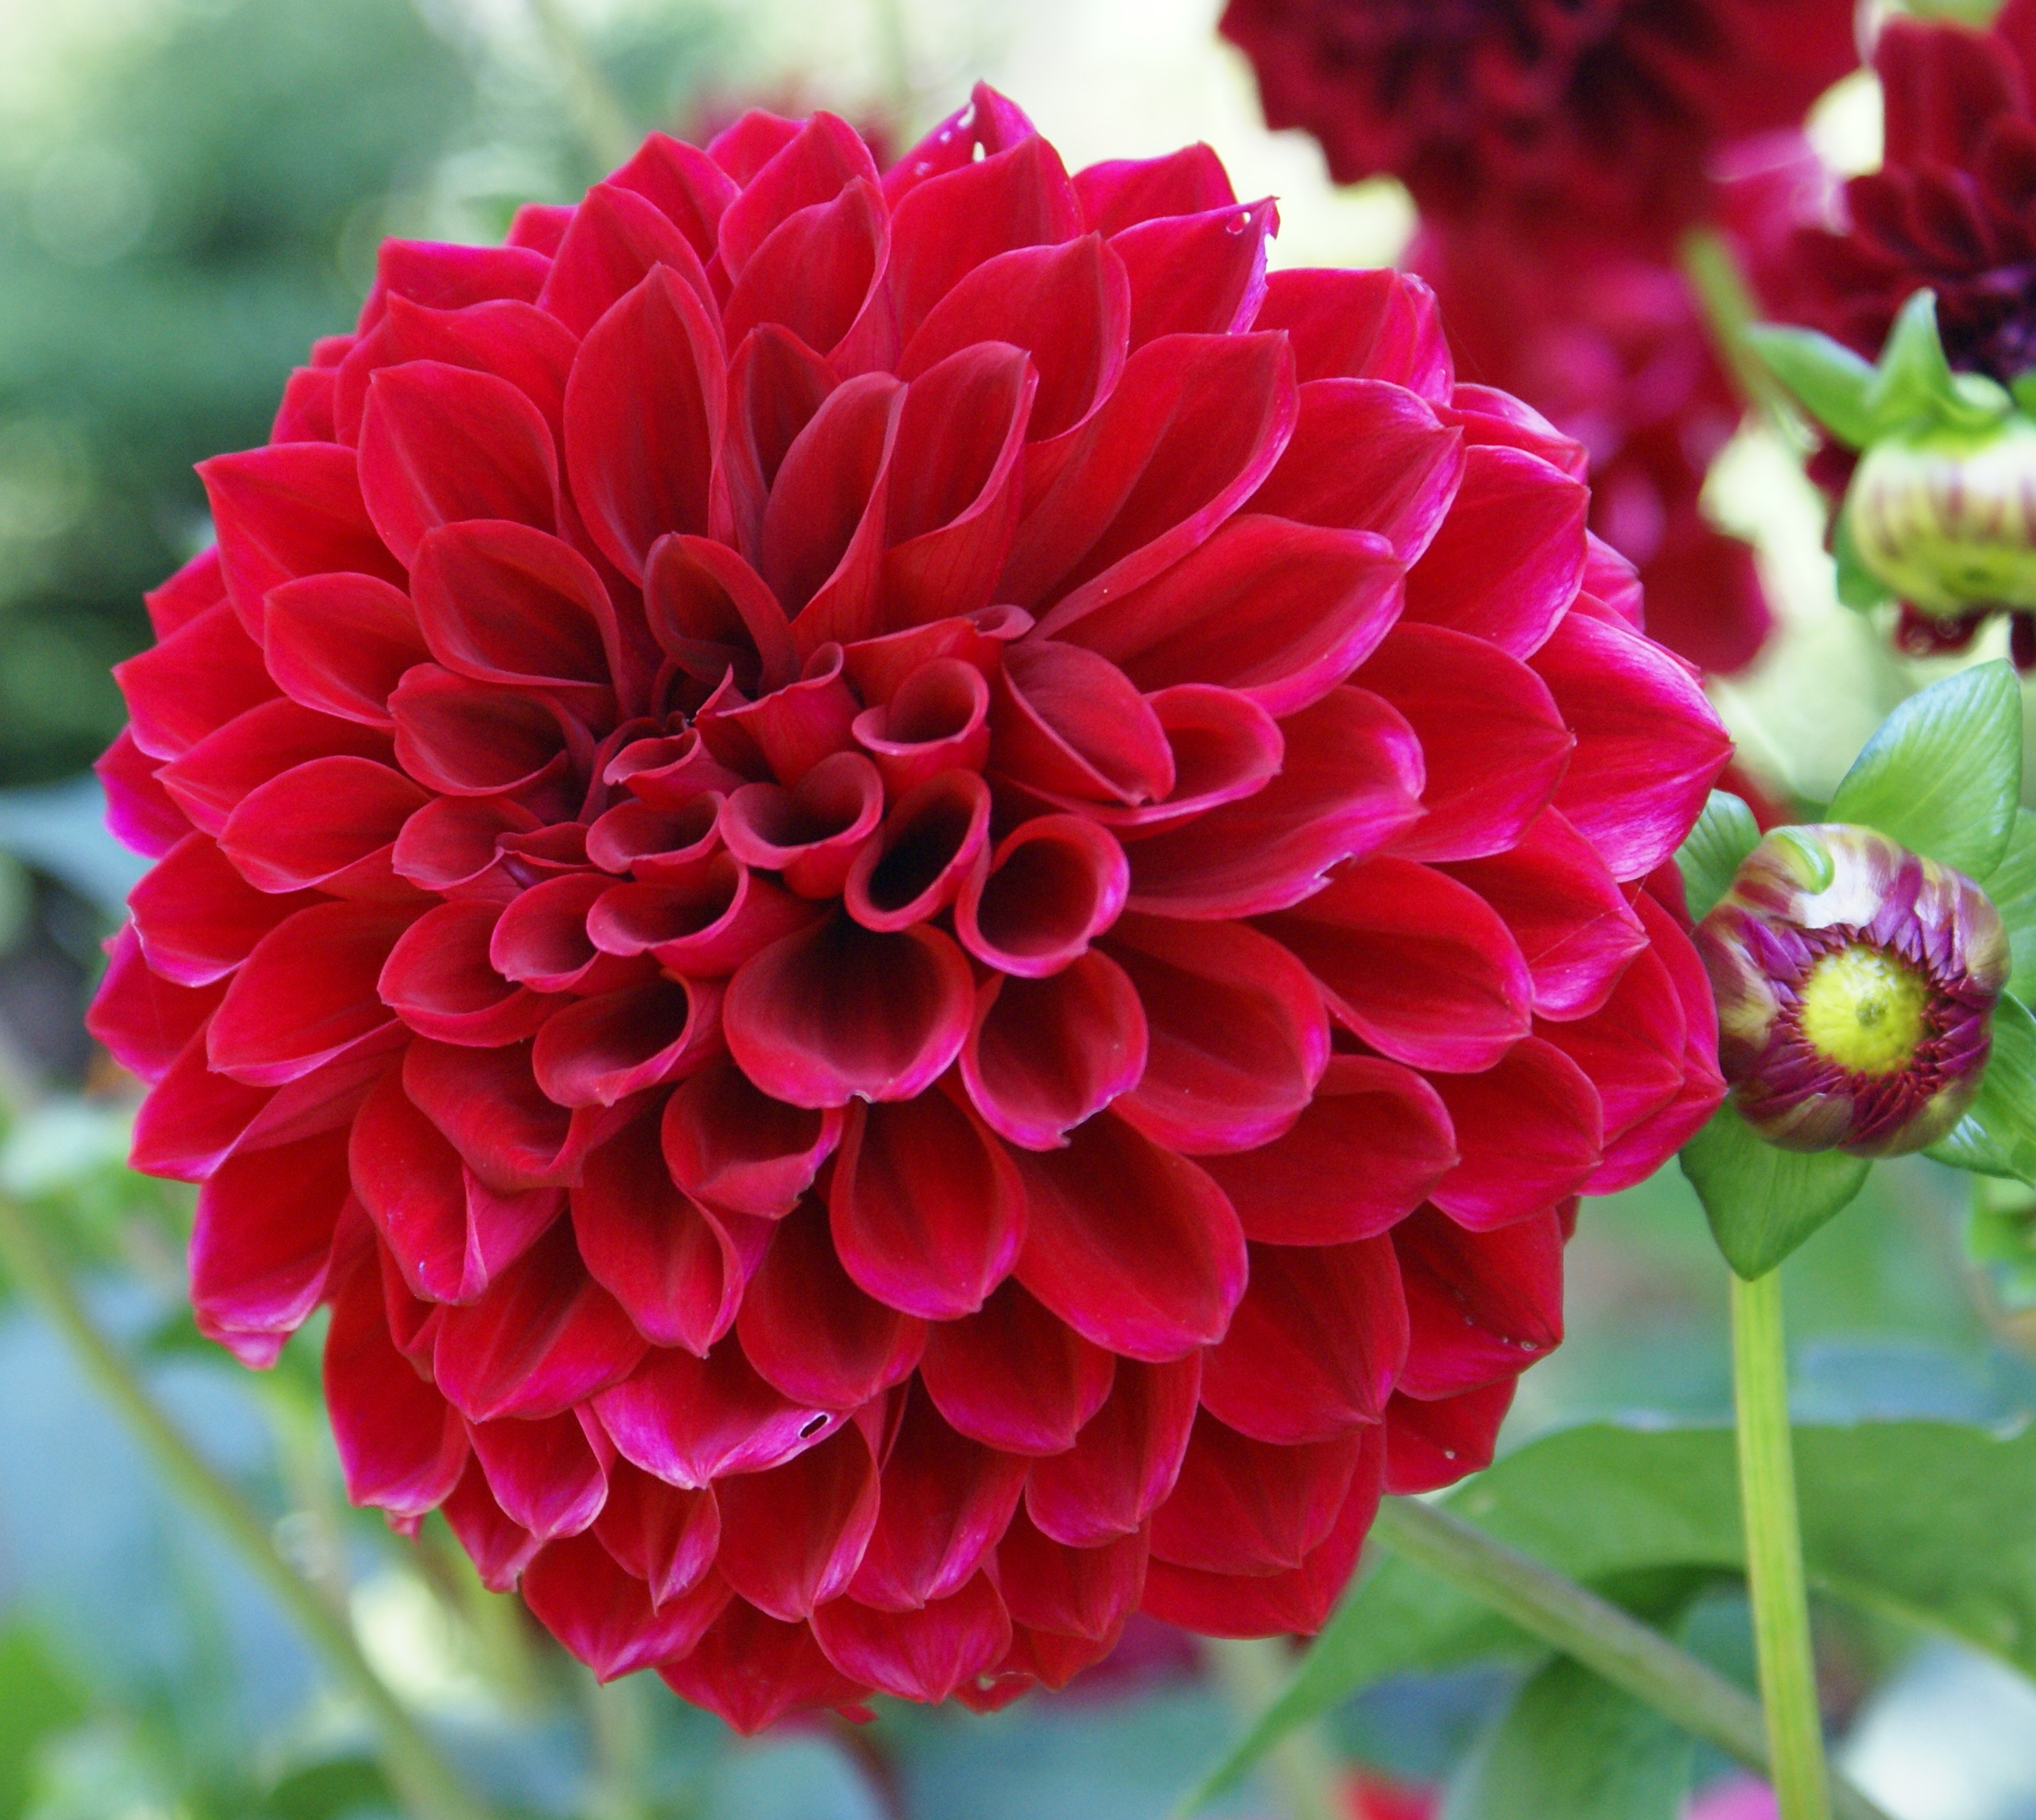 212 the dahlia flower wallpapers dahlia flower images izmirmasajfo